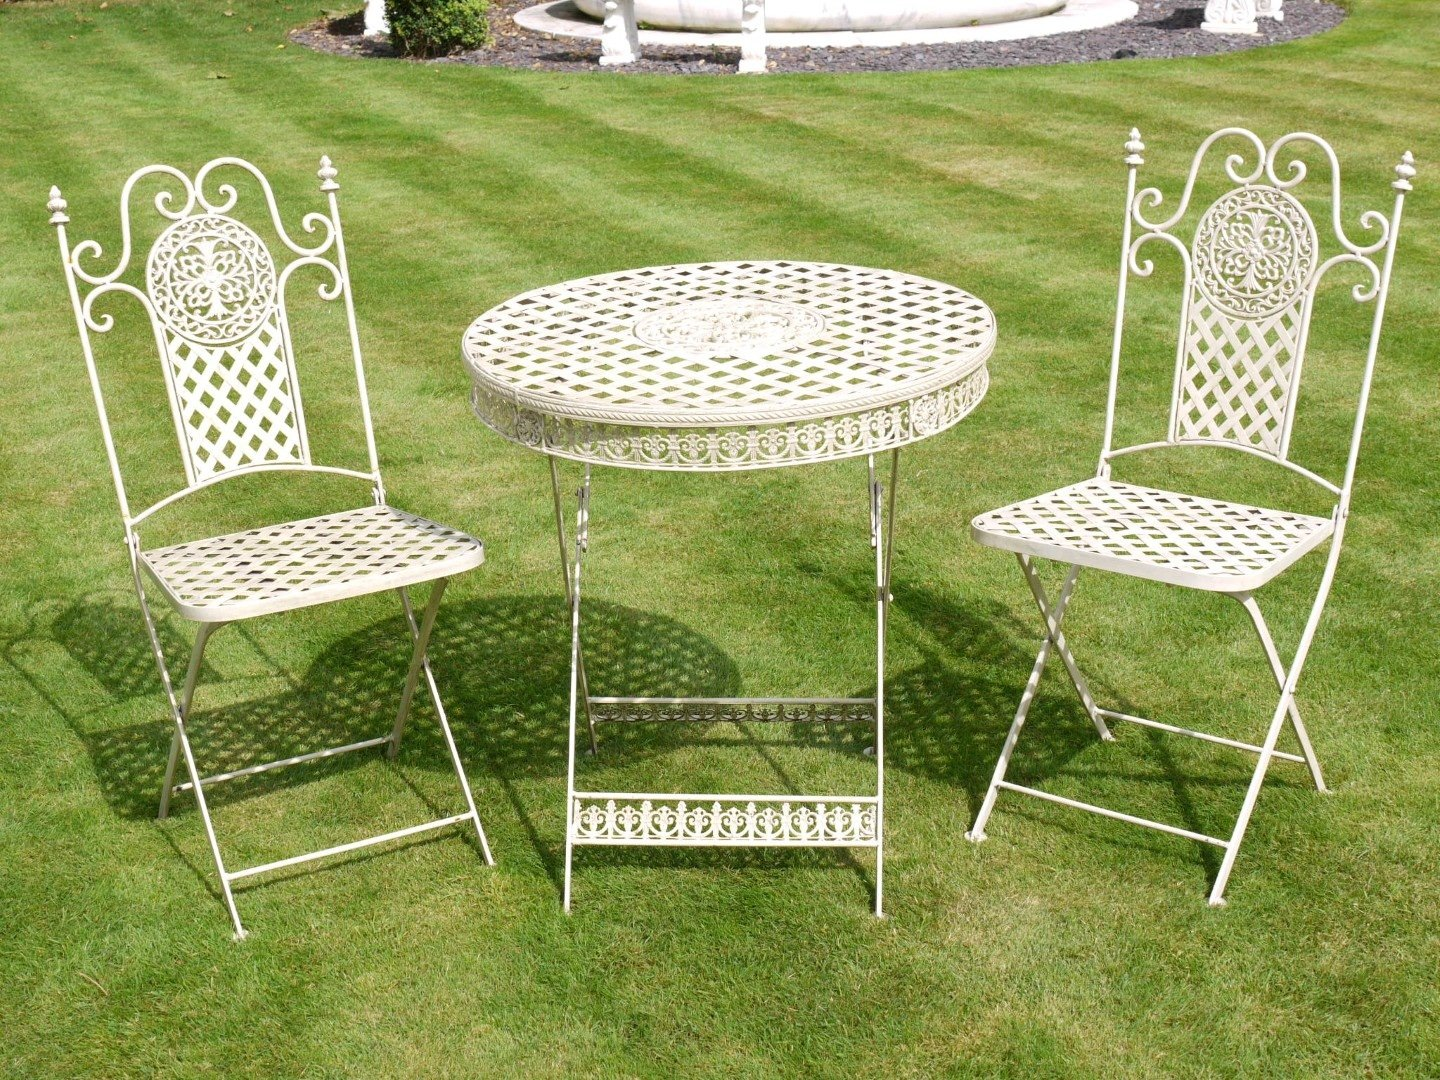 white metal outdoor furniture. French Ornate Cream Wrought Iron Metal Garden Table And Chairs Bistro Furniture Set: Amazon.co.uk: \u0026 Outdoors White Outdoor E